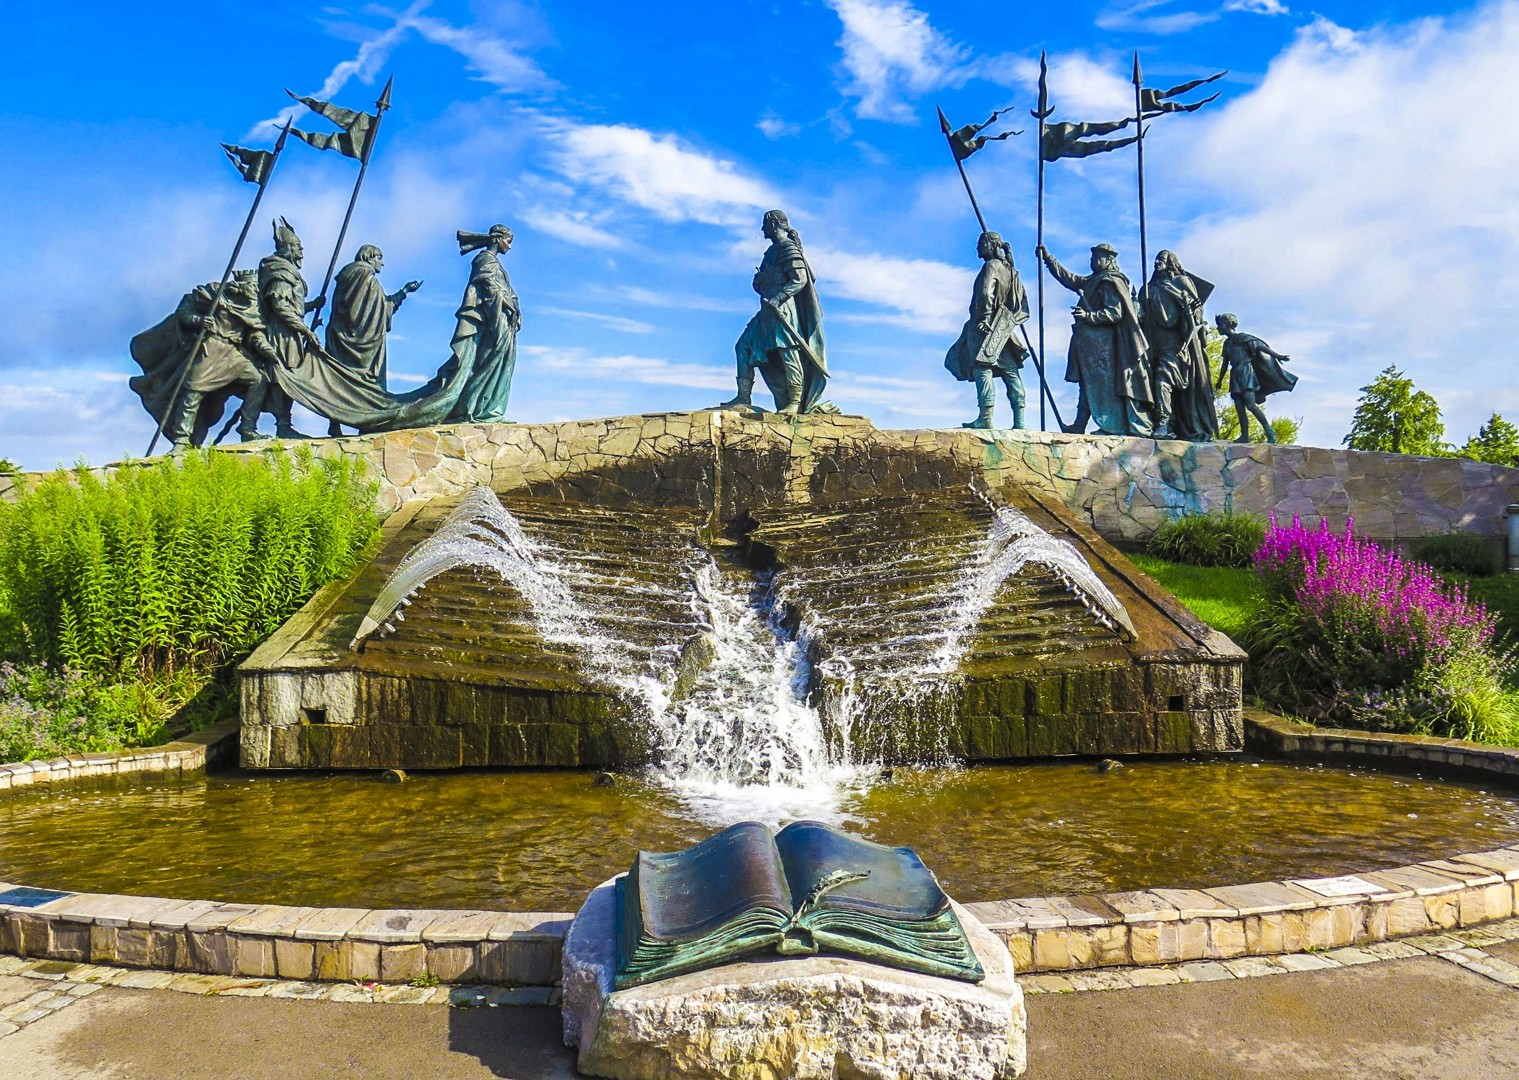 culture-nibelungen-fountain-austria-danube-cycle-holiday.jpg - Germany and Austria - The Danube Cyclepath (8 Days) - Self-Guided Leisure Cycling Holiday - Leisure Cycling